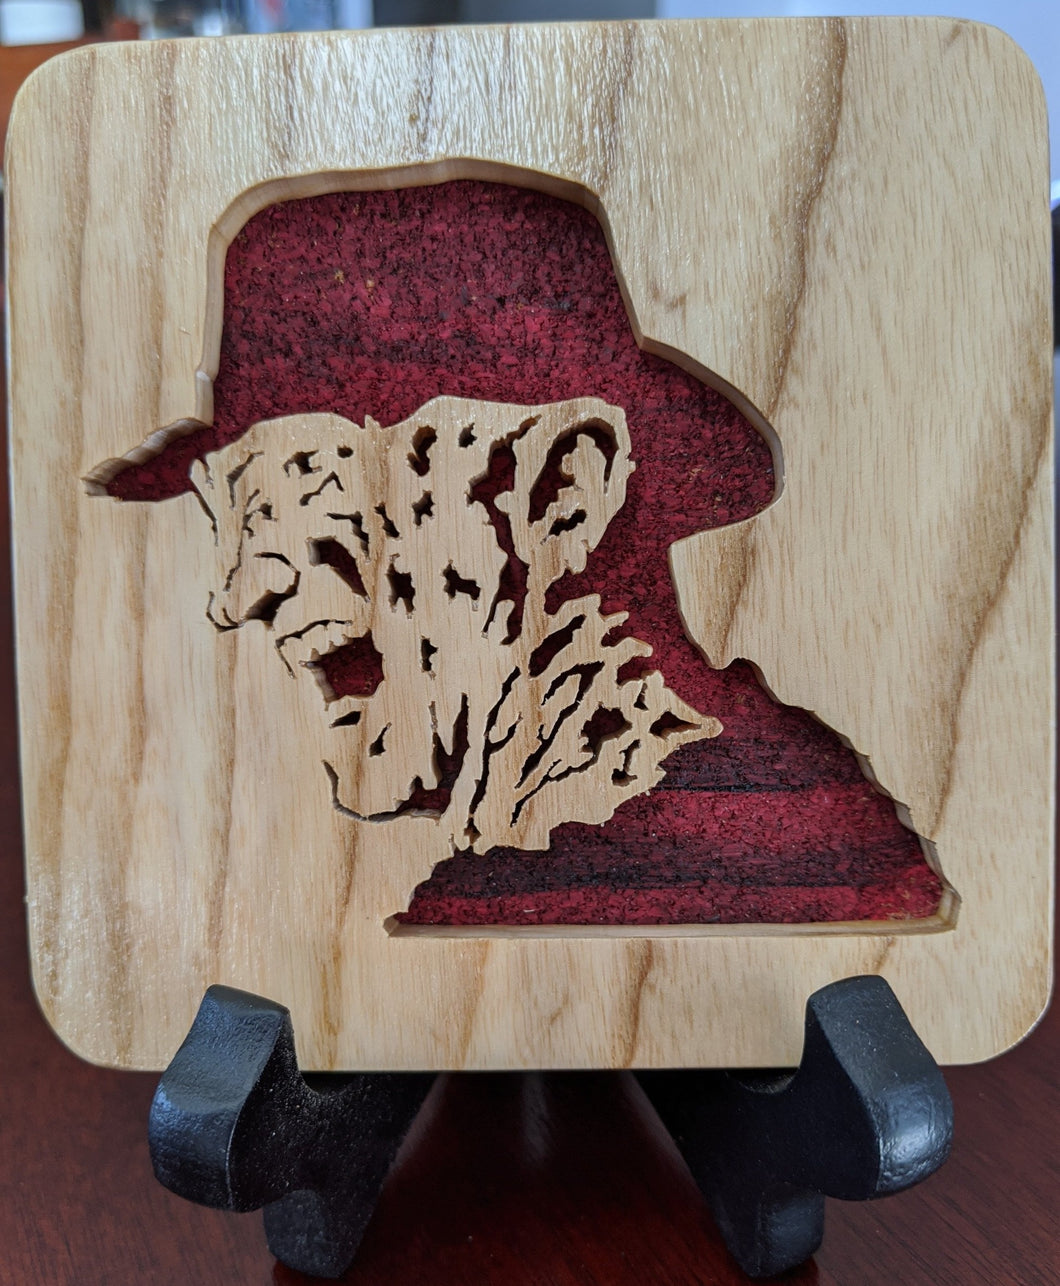 Freddy Krueger Hand Cut Wooden Deskoration